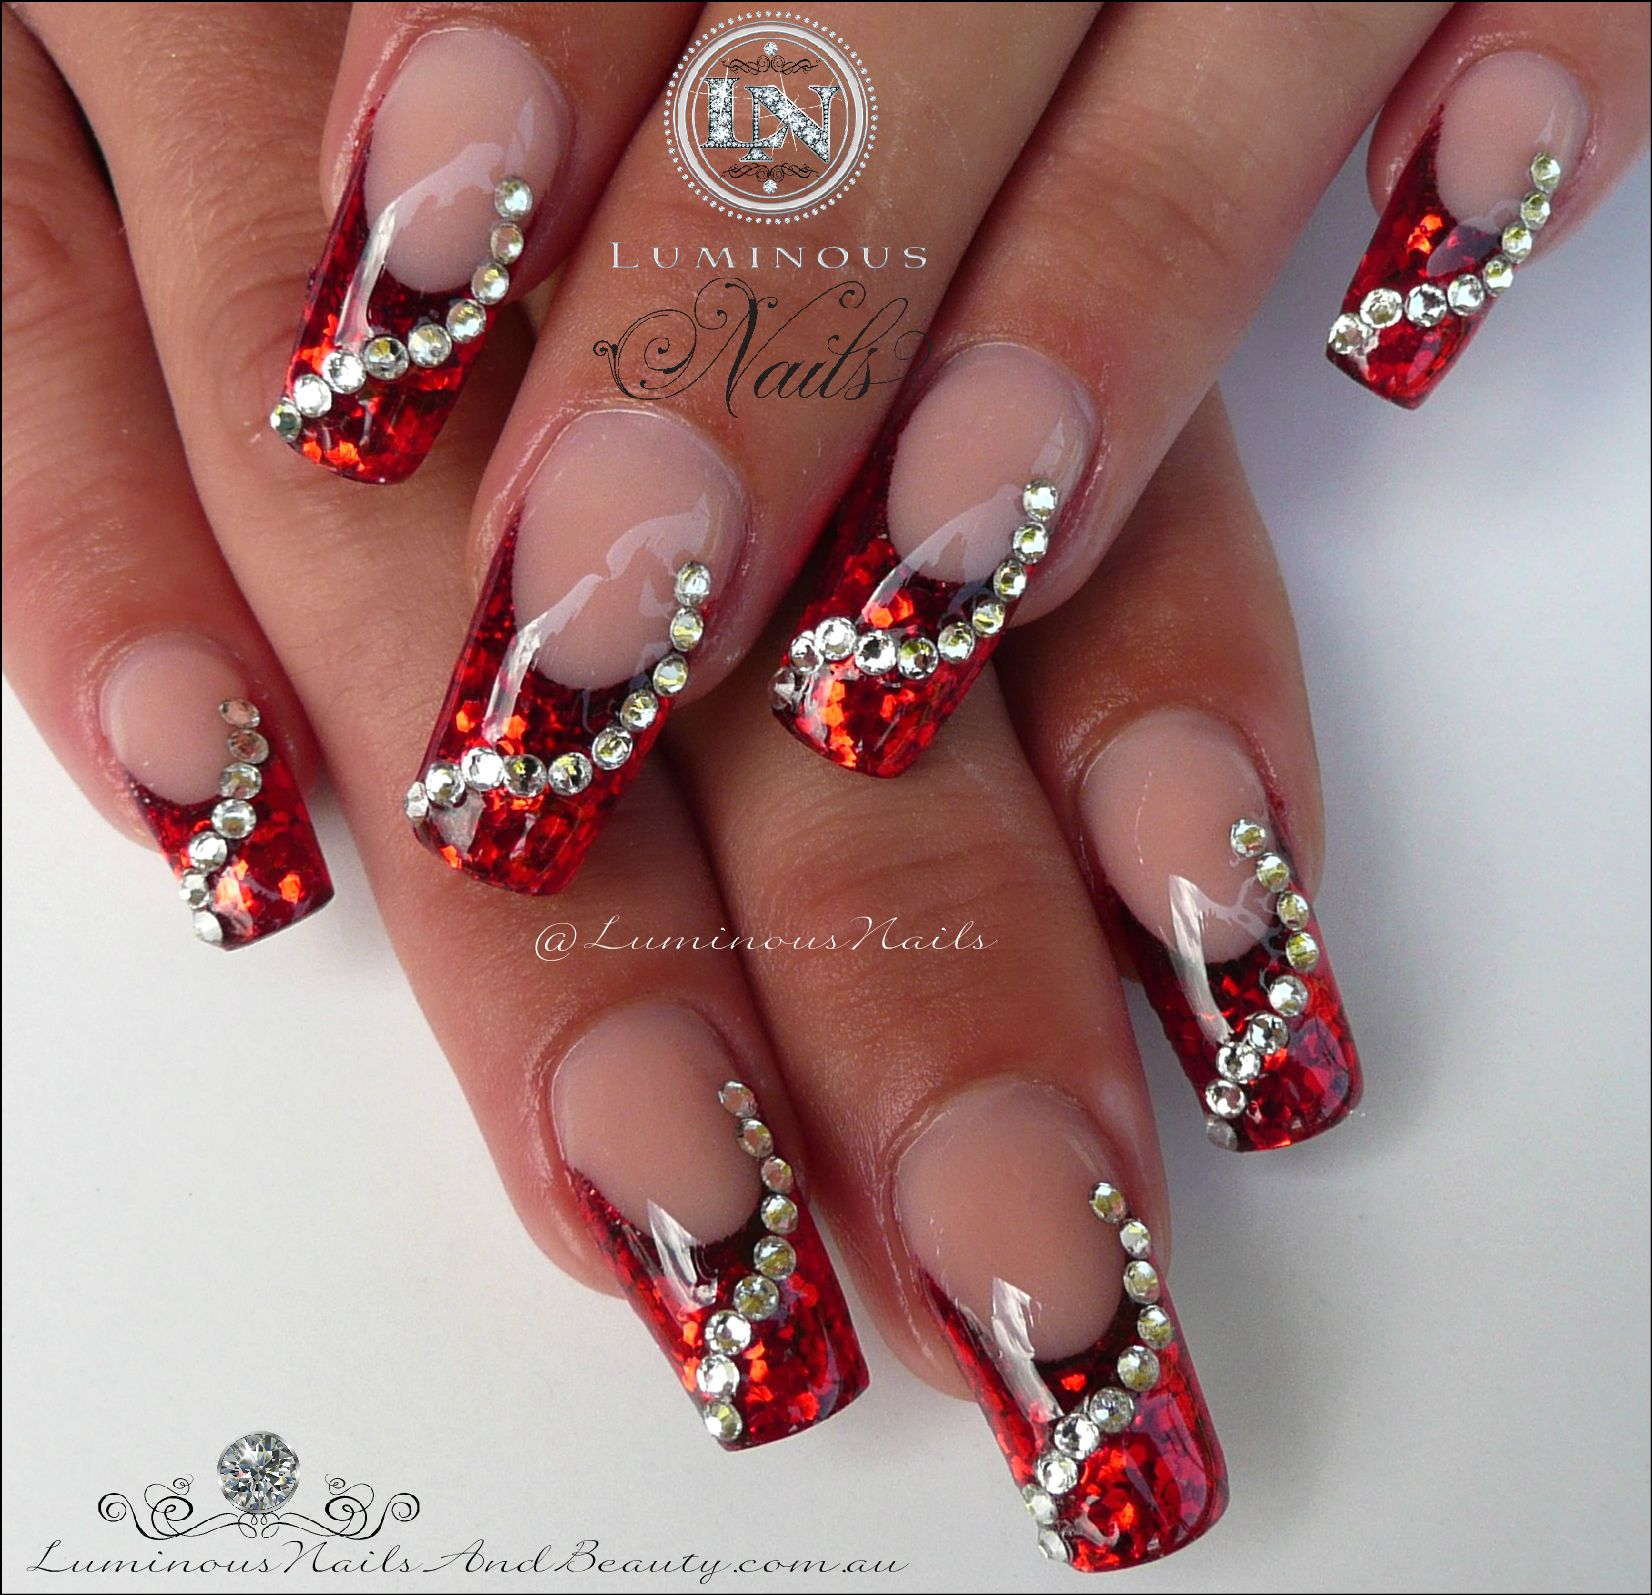 26 Red And Silver Glitter Nail Art Designs Ideas: Glittery Red Christmas Nails With Swarovski Crystals